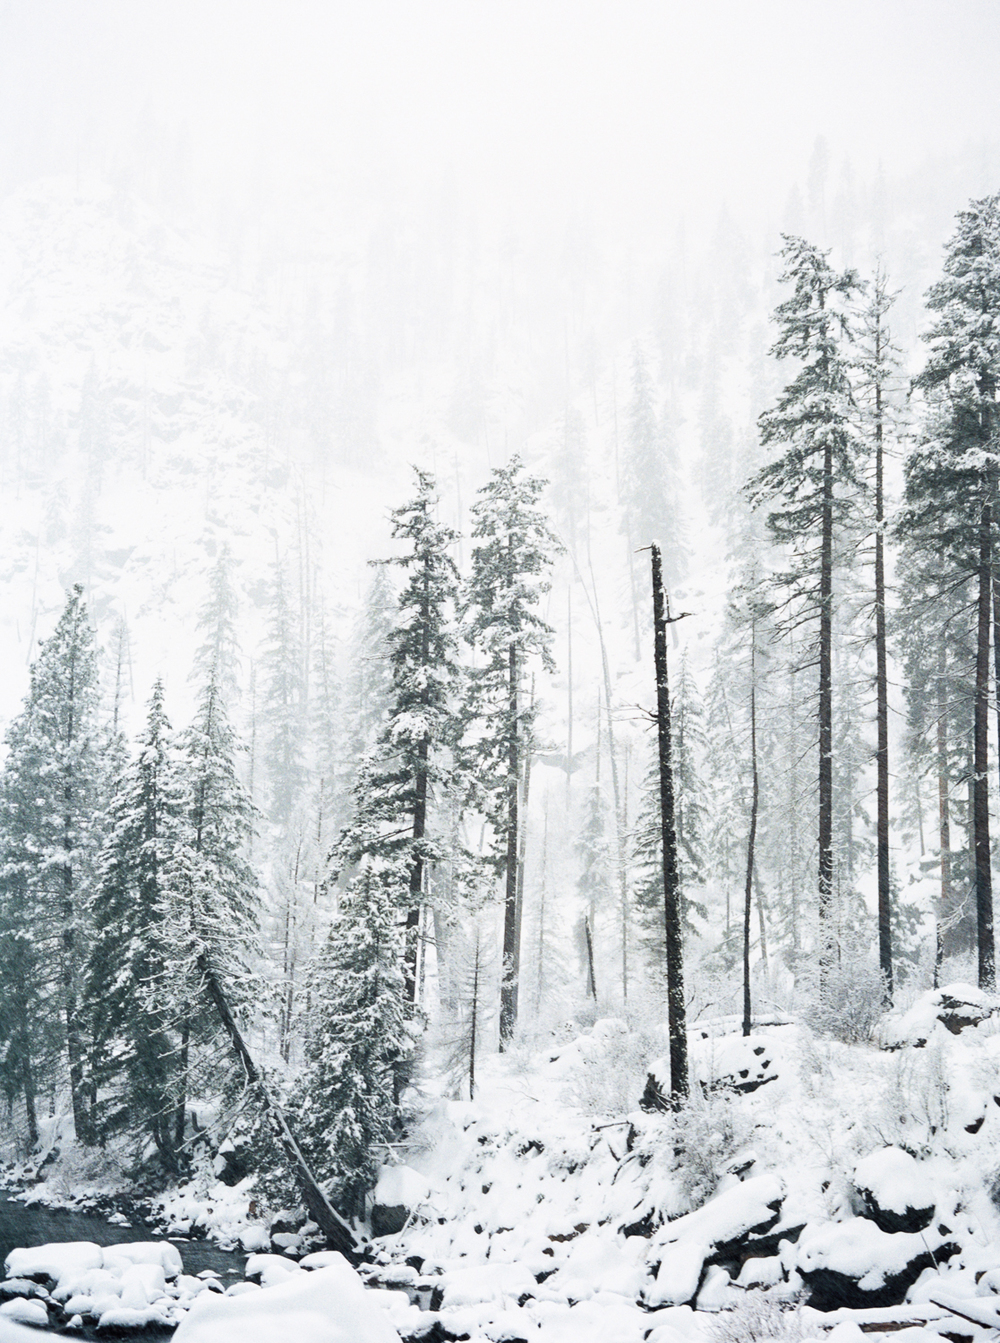 Winter in Wenatchee, Washington by Leilanika Abalos